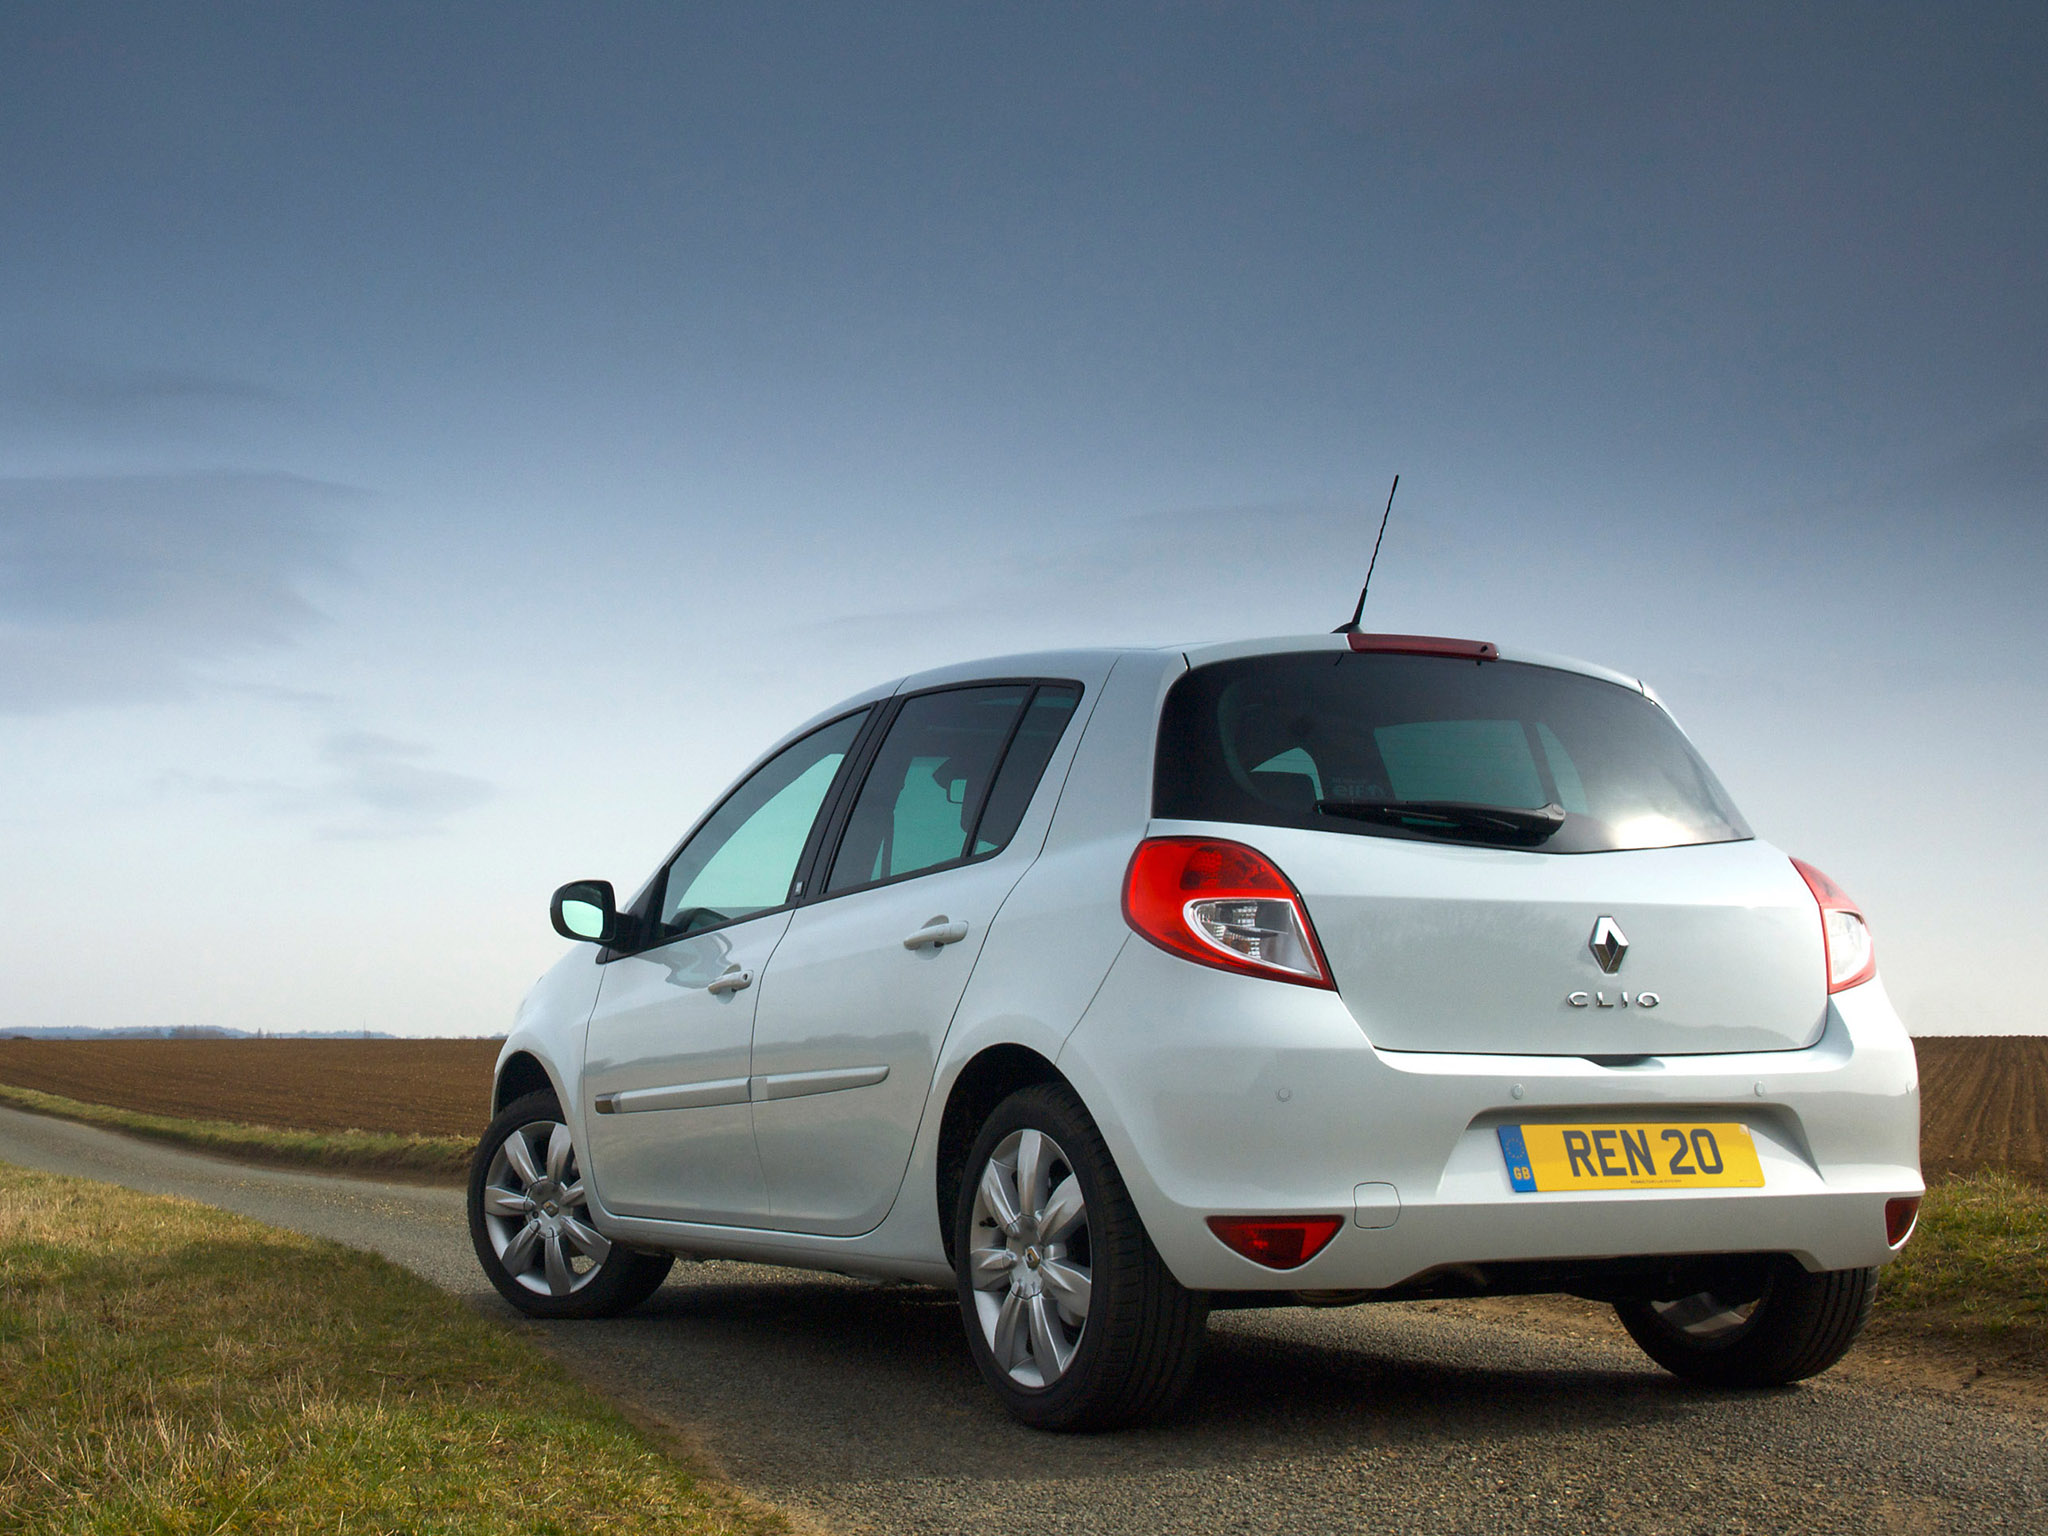 renault clio 20th uk 2010 renault clio 20th uk 2010 photo 04 car in pictures car photo gallery. Black Bedroom Furniture Sets. Home Design Ideas